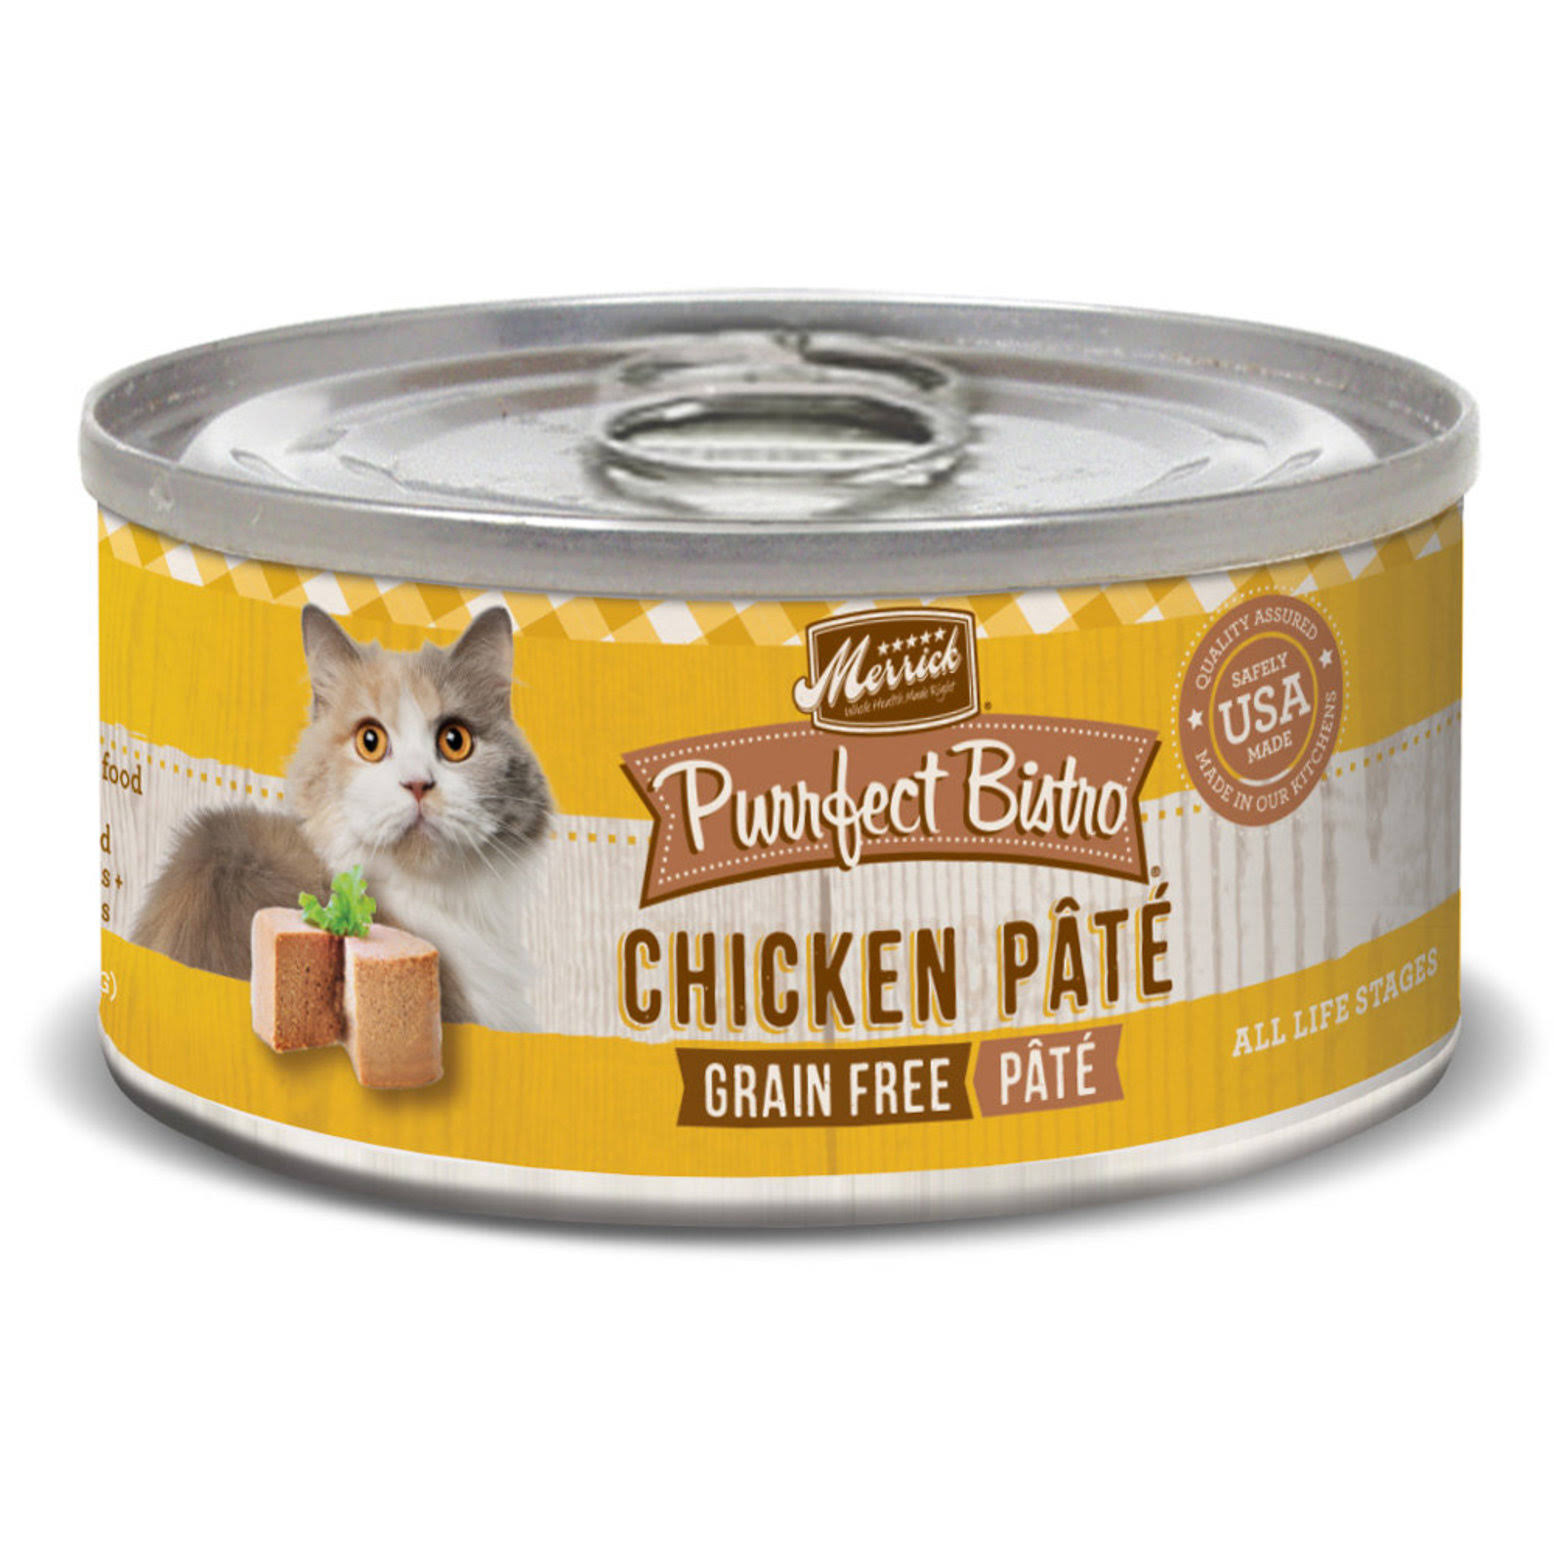 Merrick Purrfect Bistro Canned Cat Food - Chicken Pate, 3 oz